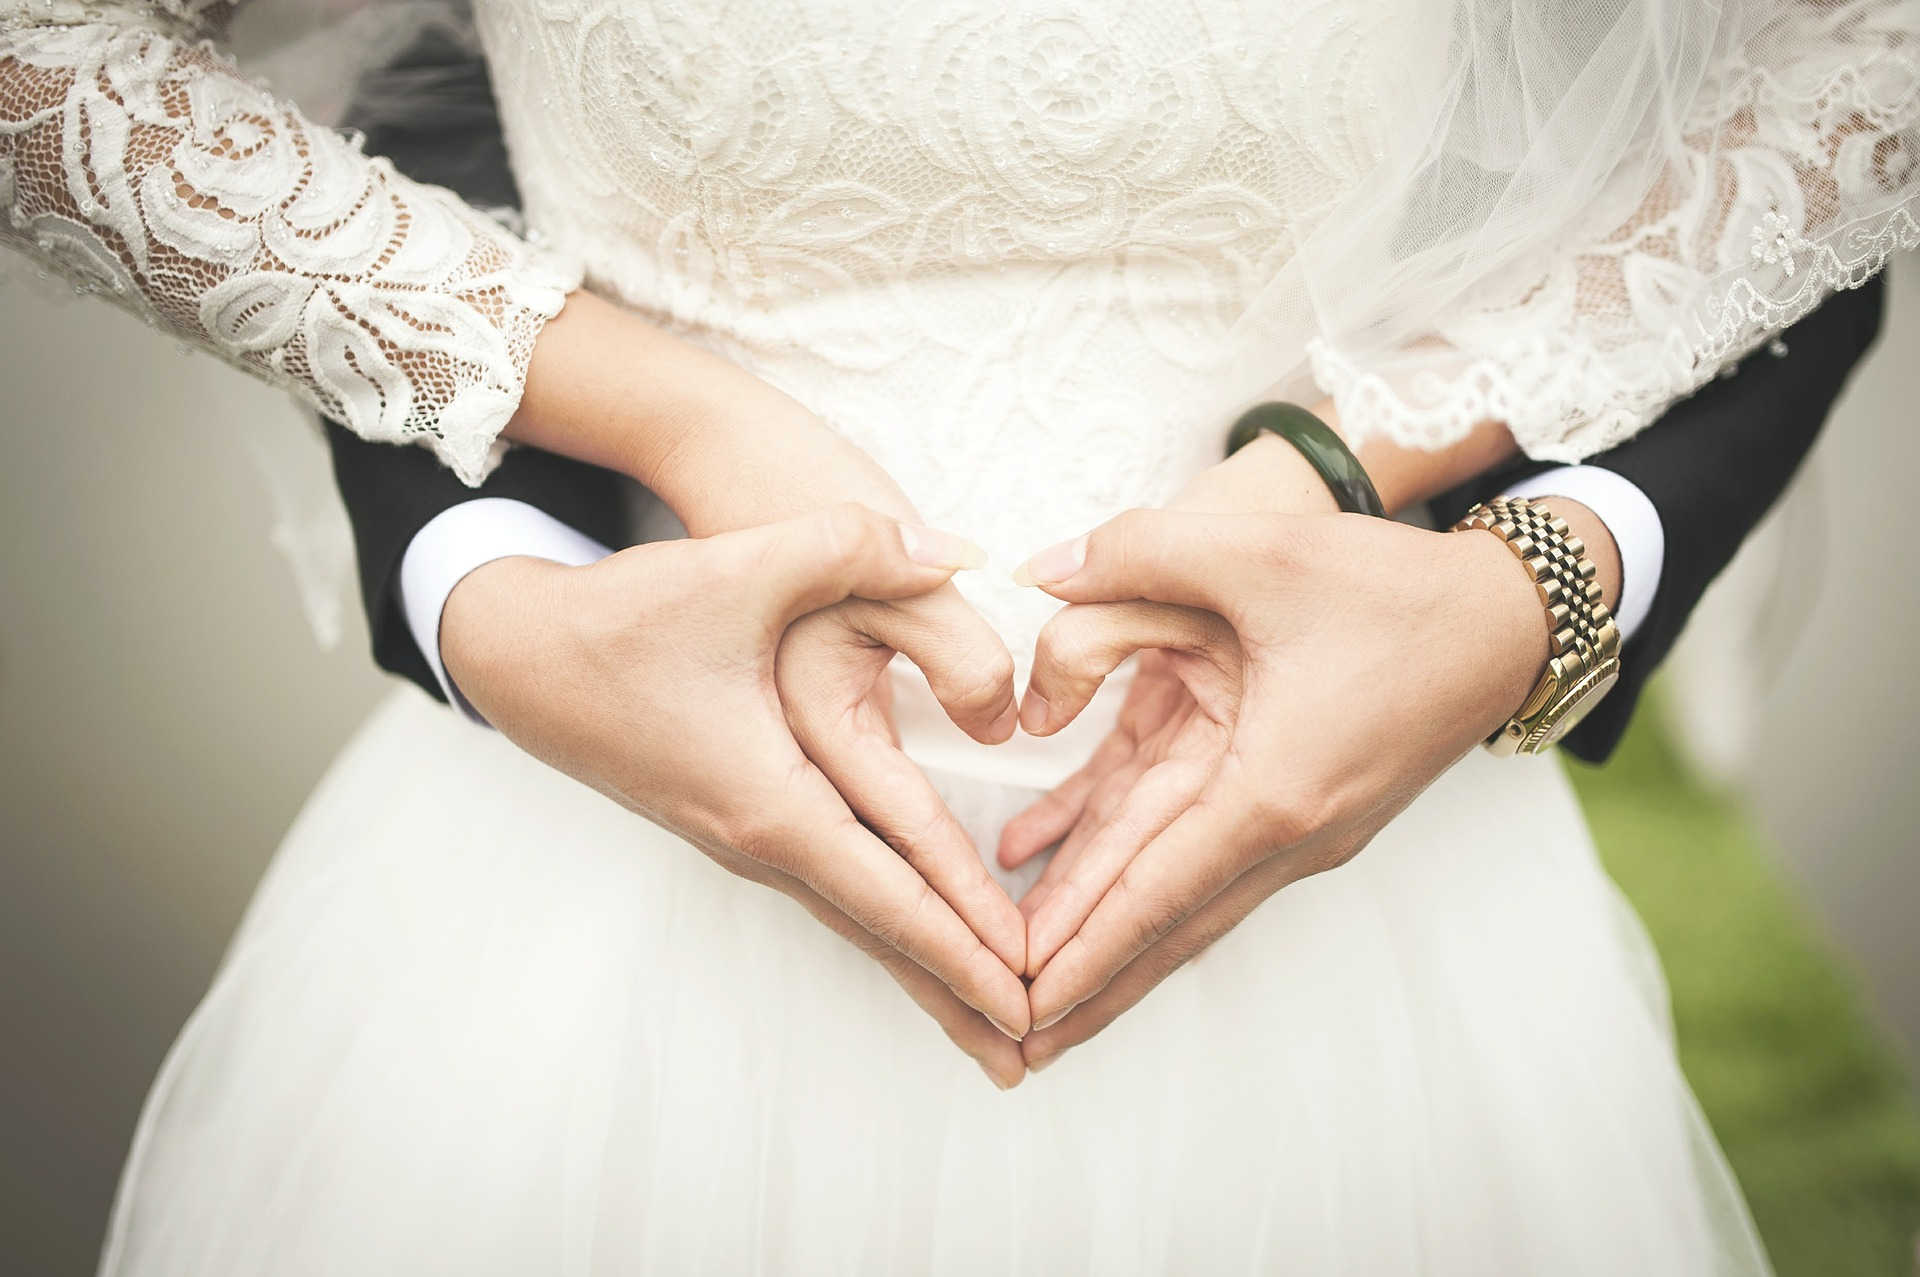 Groom standing behind bride making love heart shape with their hands - wedding day